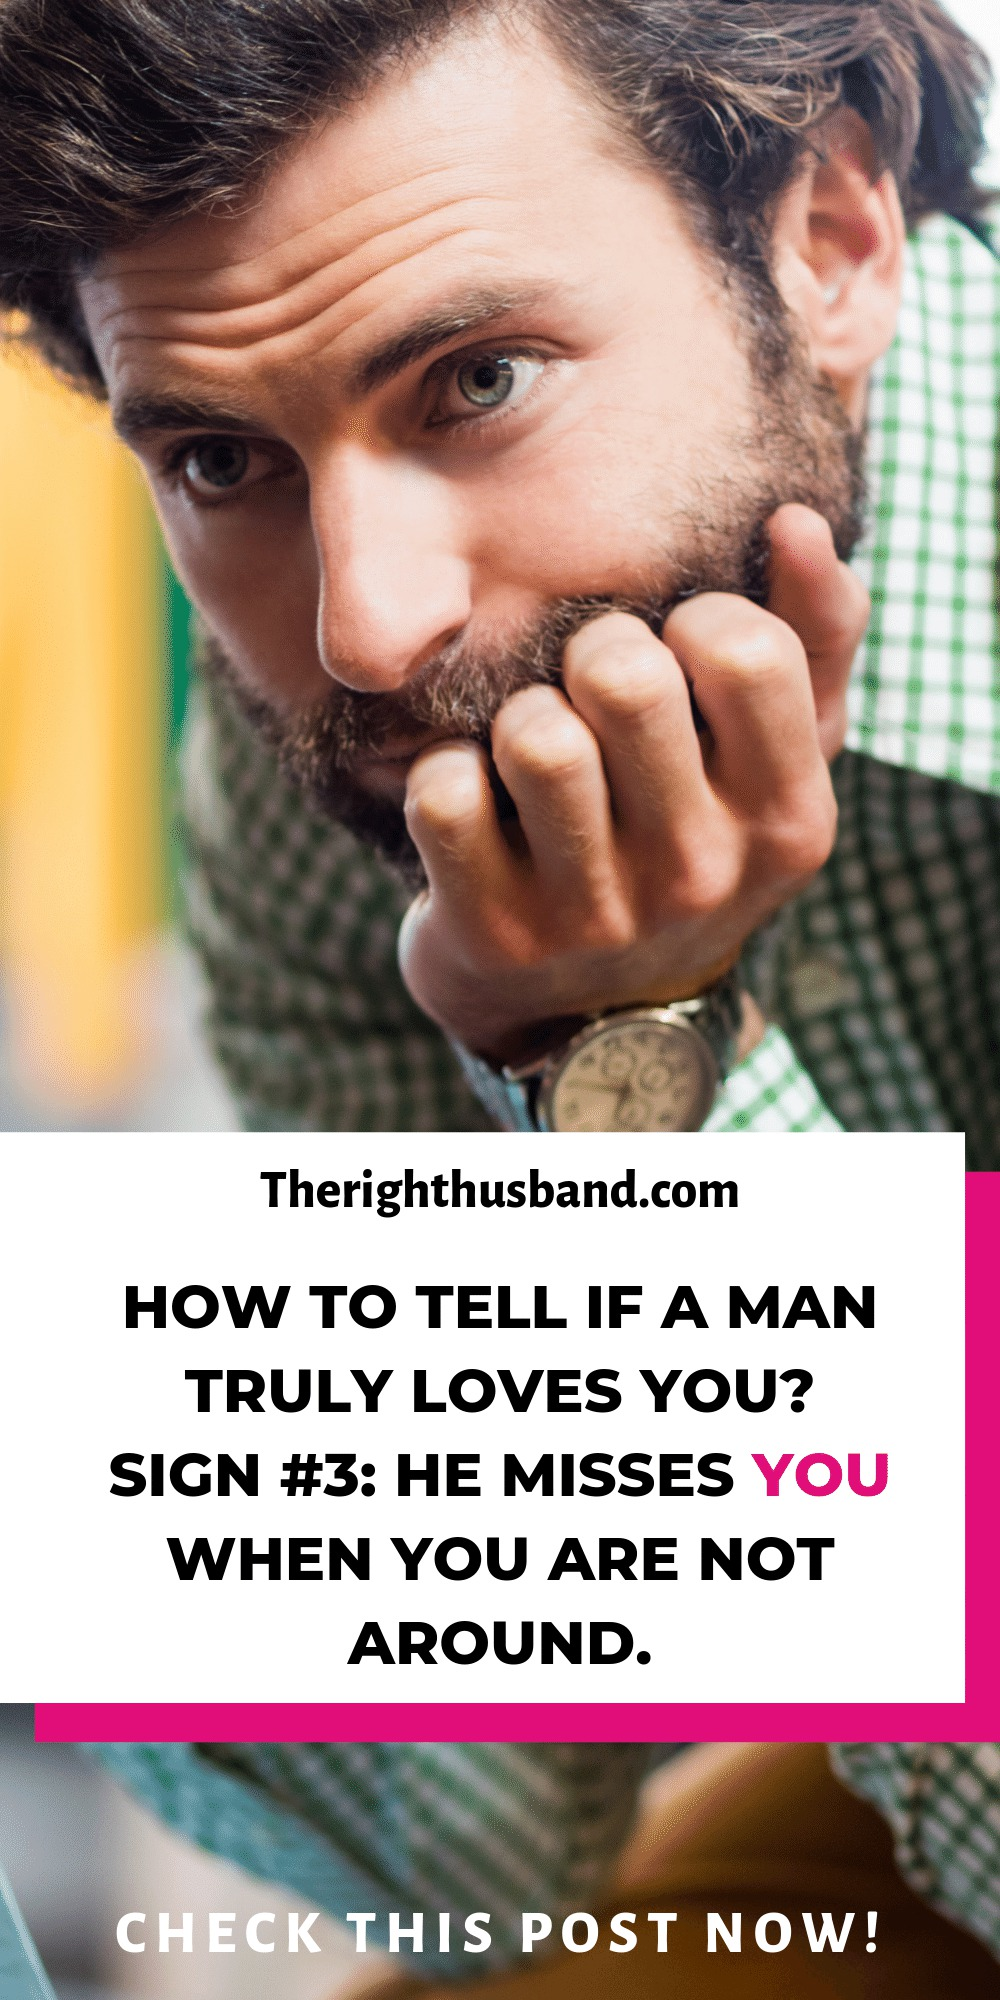 how to tell if a man loves you 1 (1)